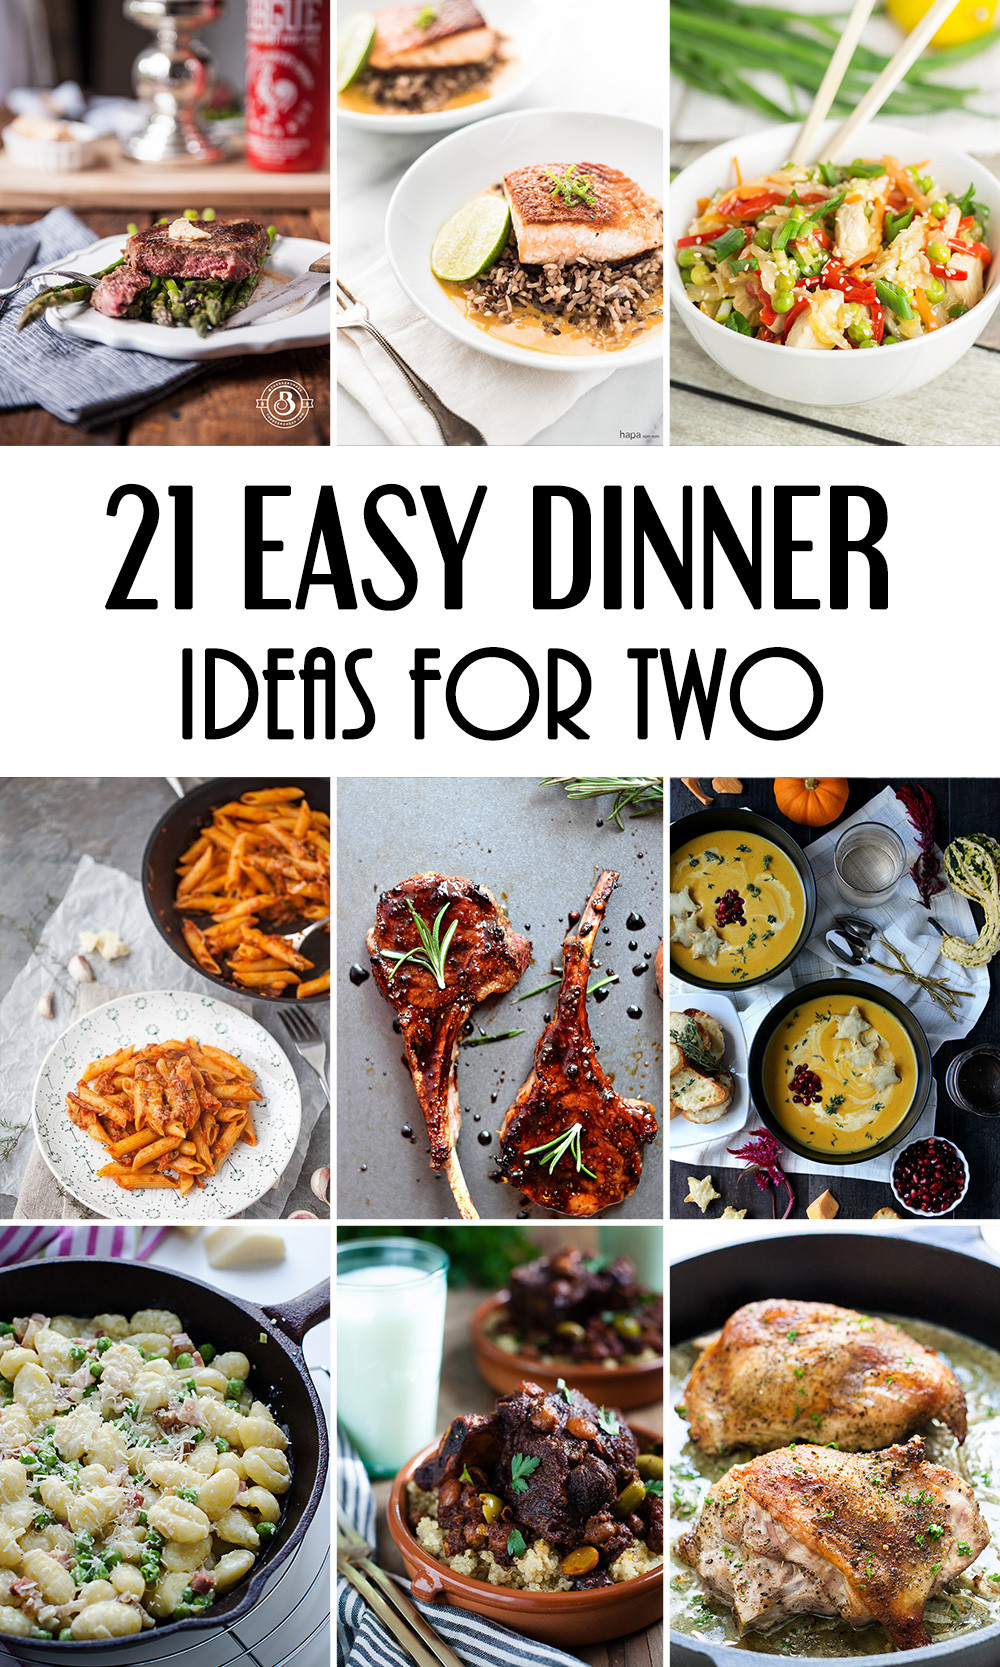 Simple Dinners For Two  21 Easy Dinner Ideas For Two That Will Impress Your Loved e